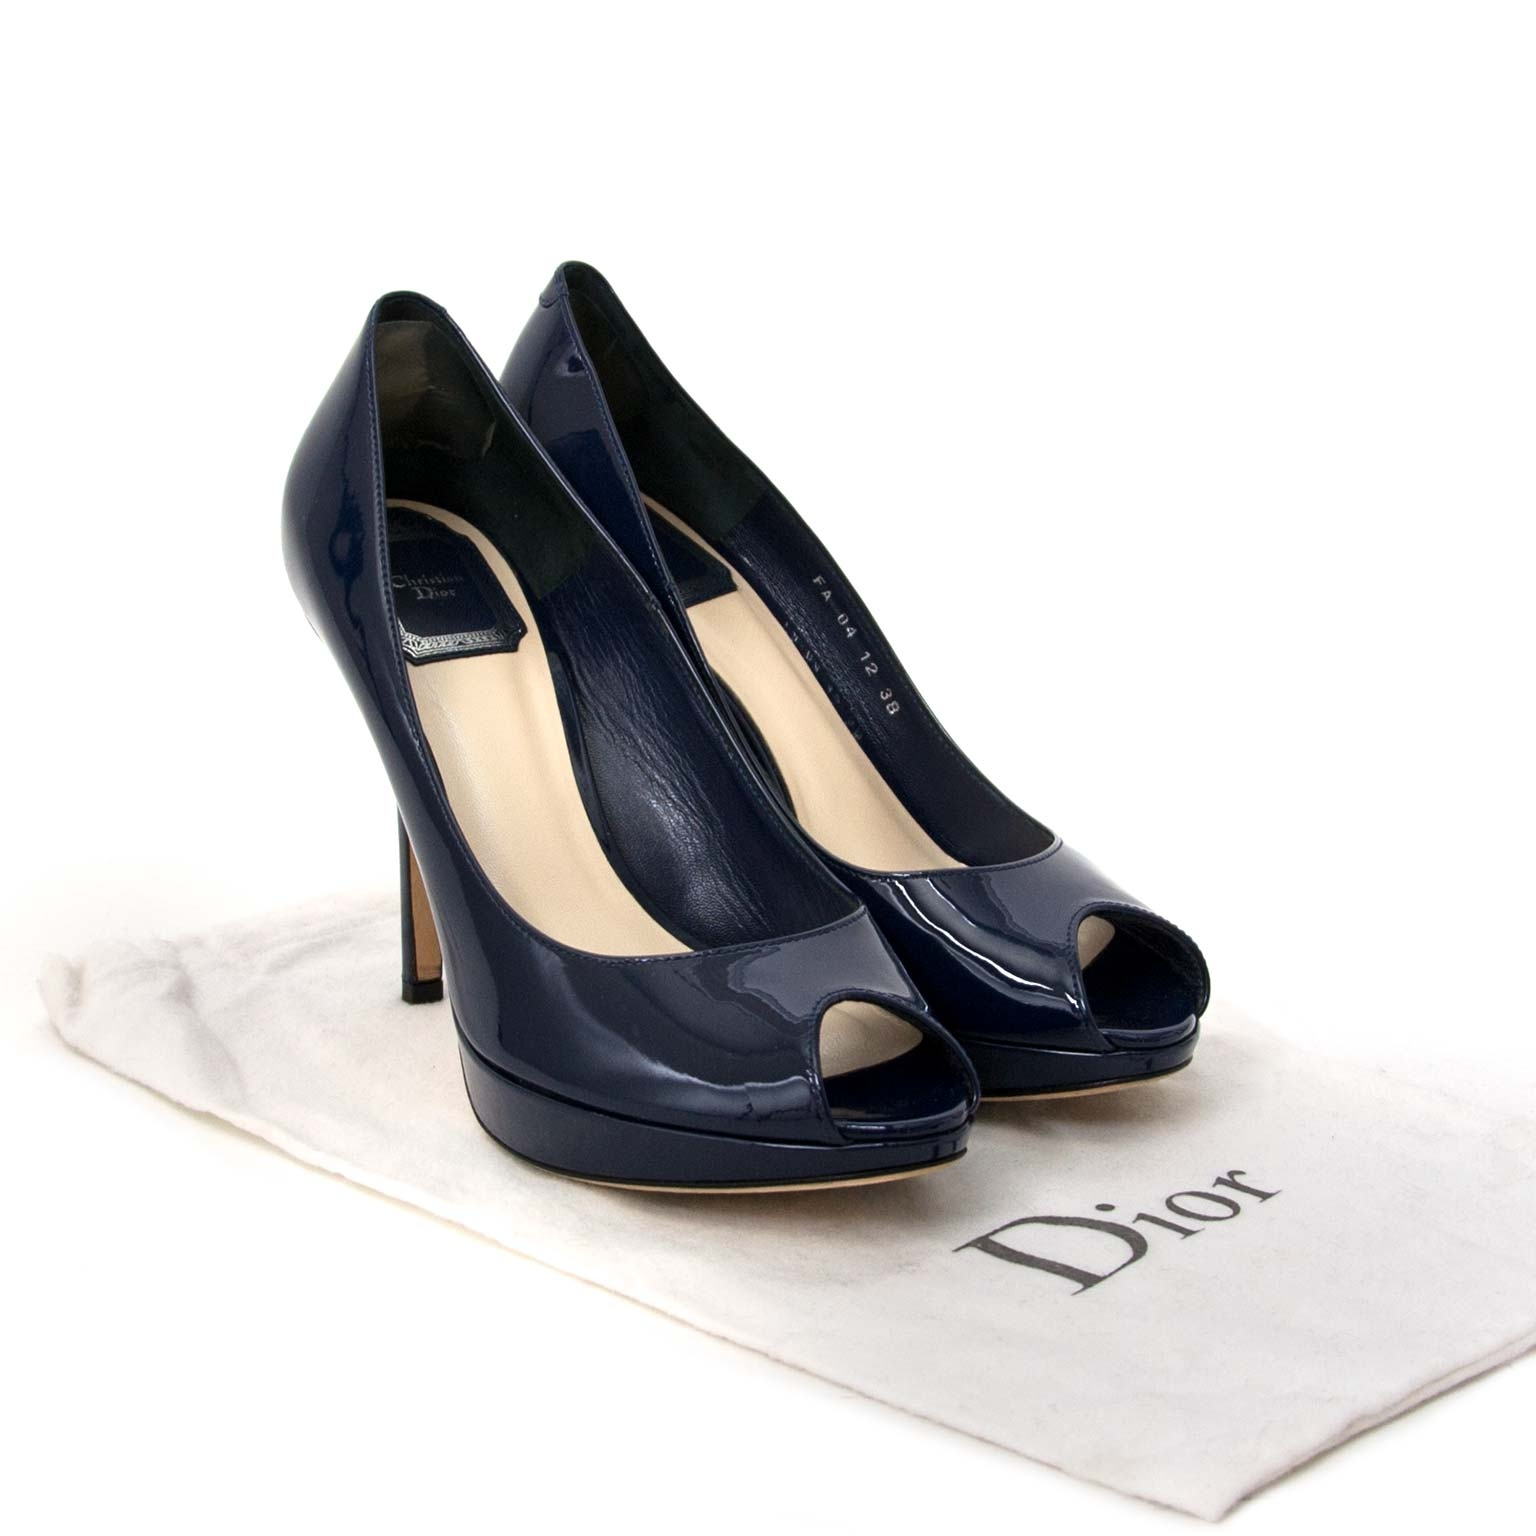 dior miss dior pumps online for sale at labellov vintage fashion webshop antwerp belgium